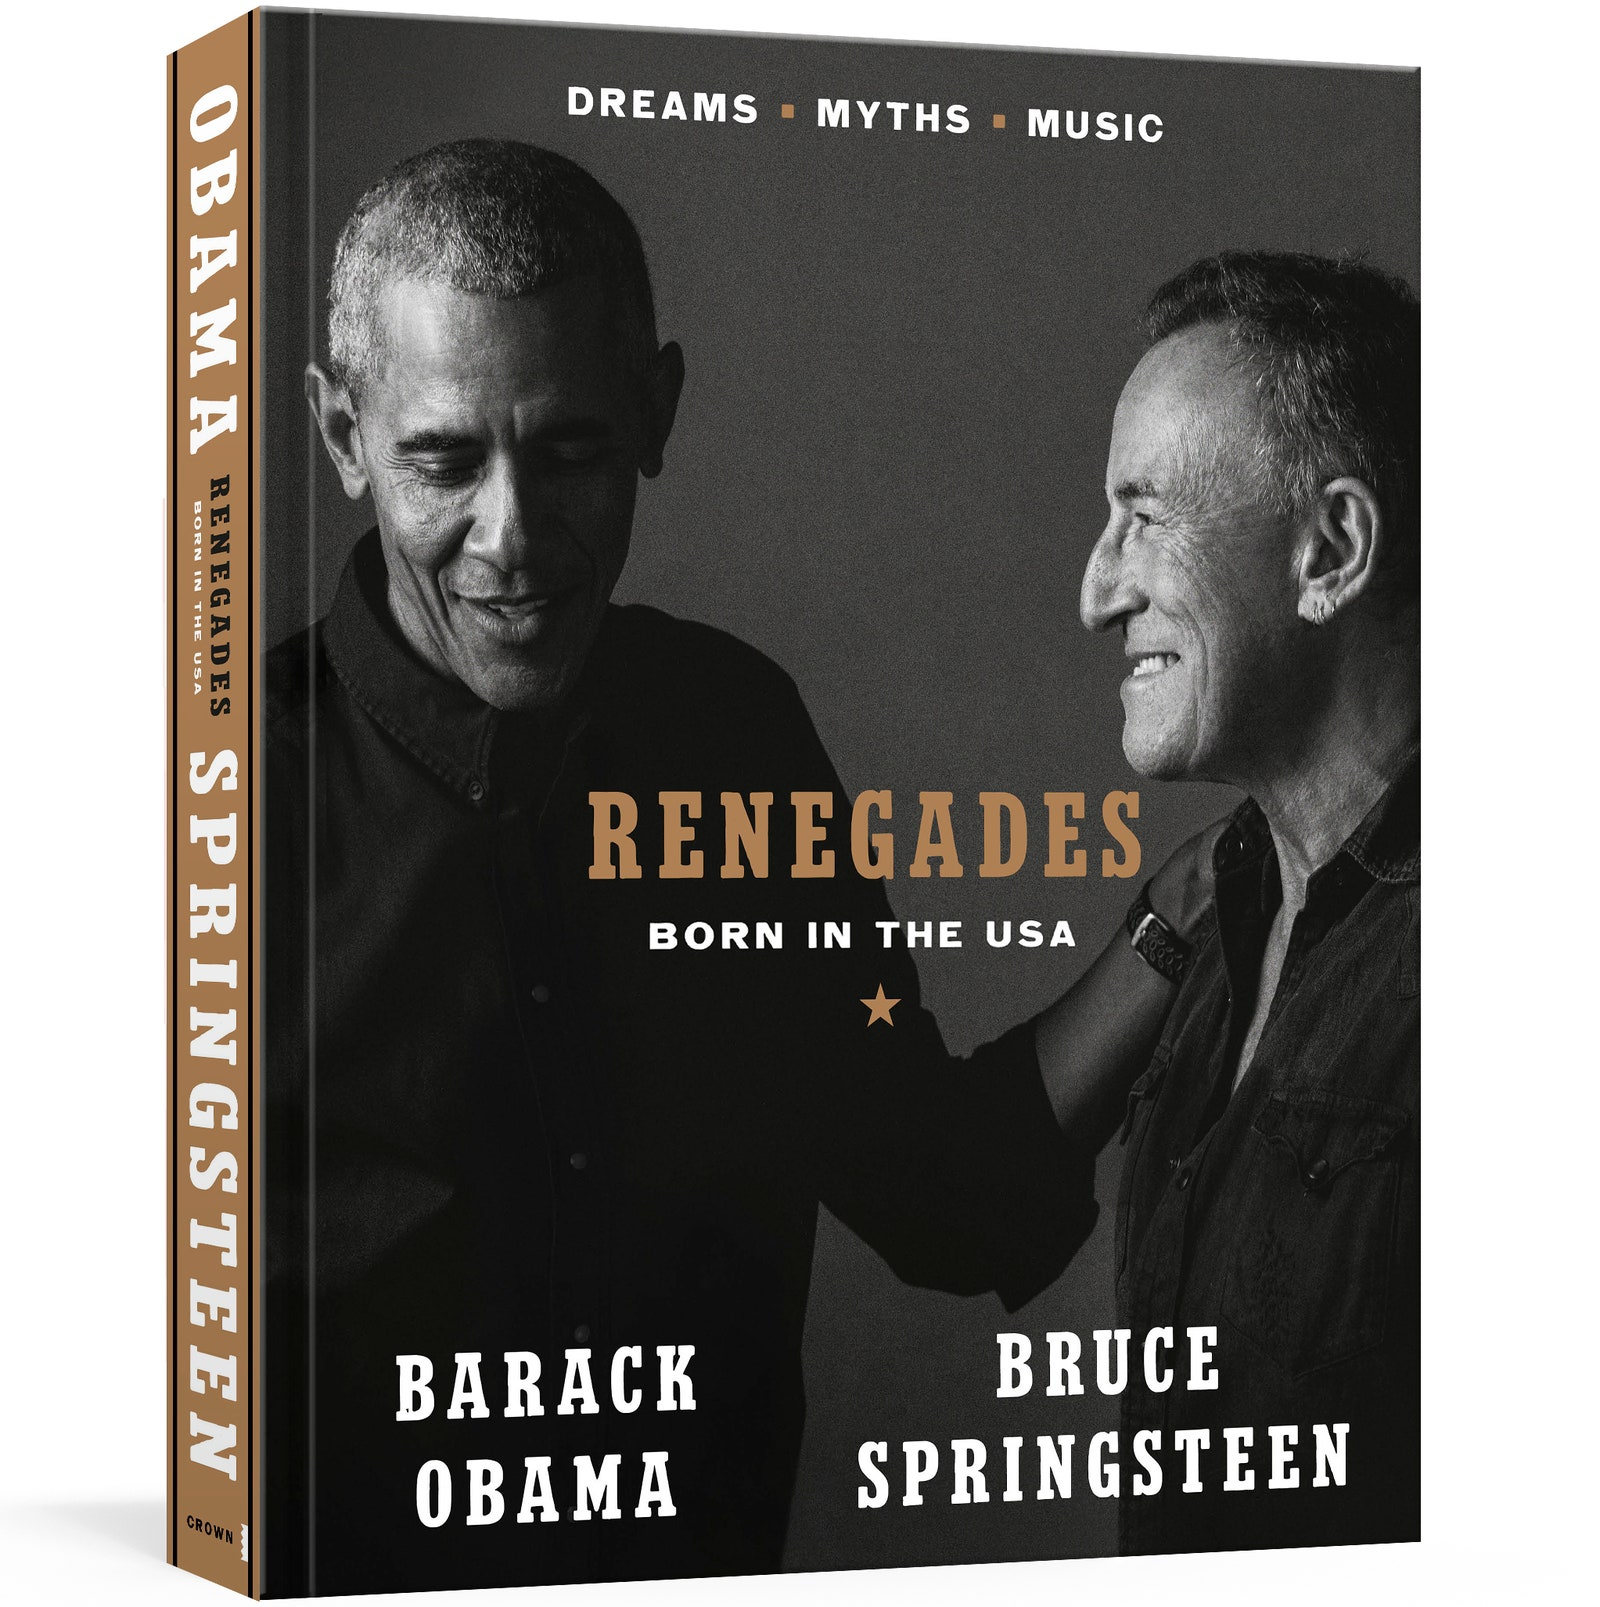 Bruce Springsteen and Barack Obama Are Publishing a Book